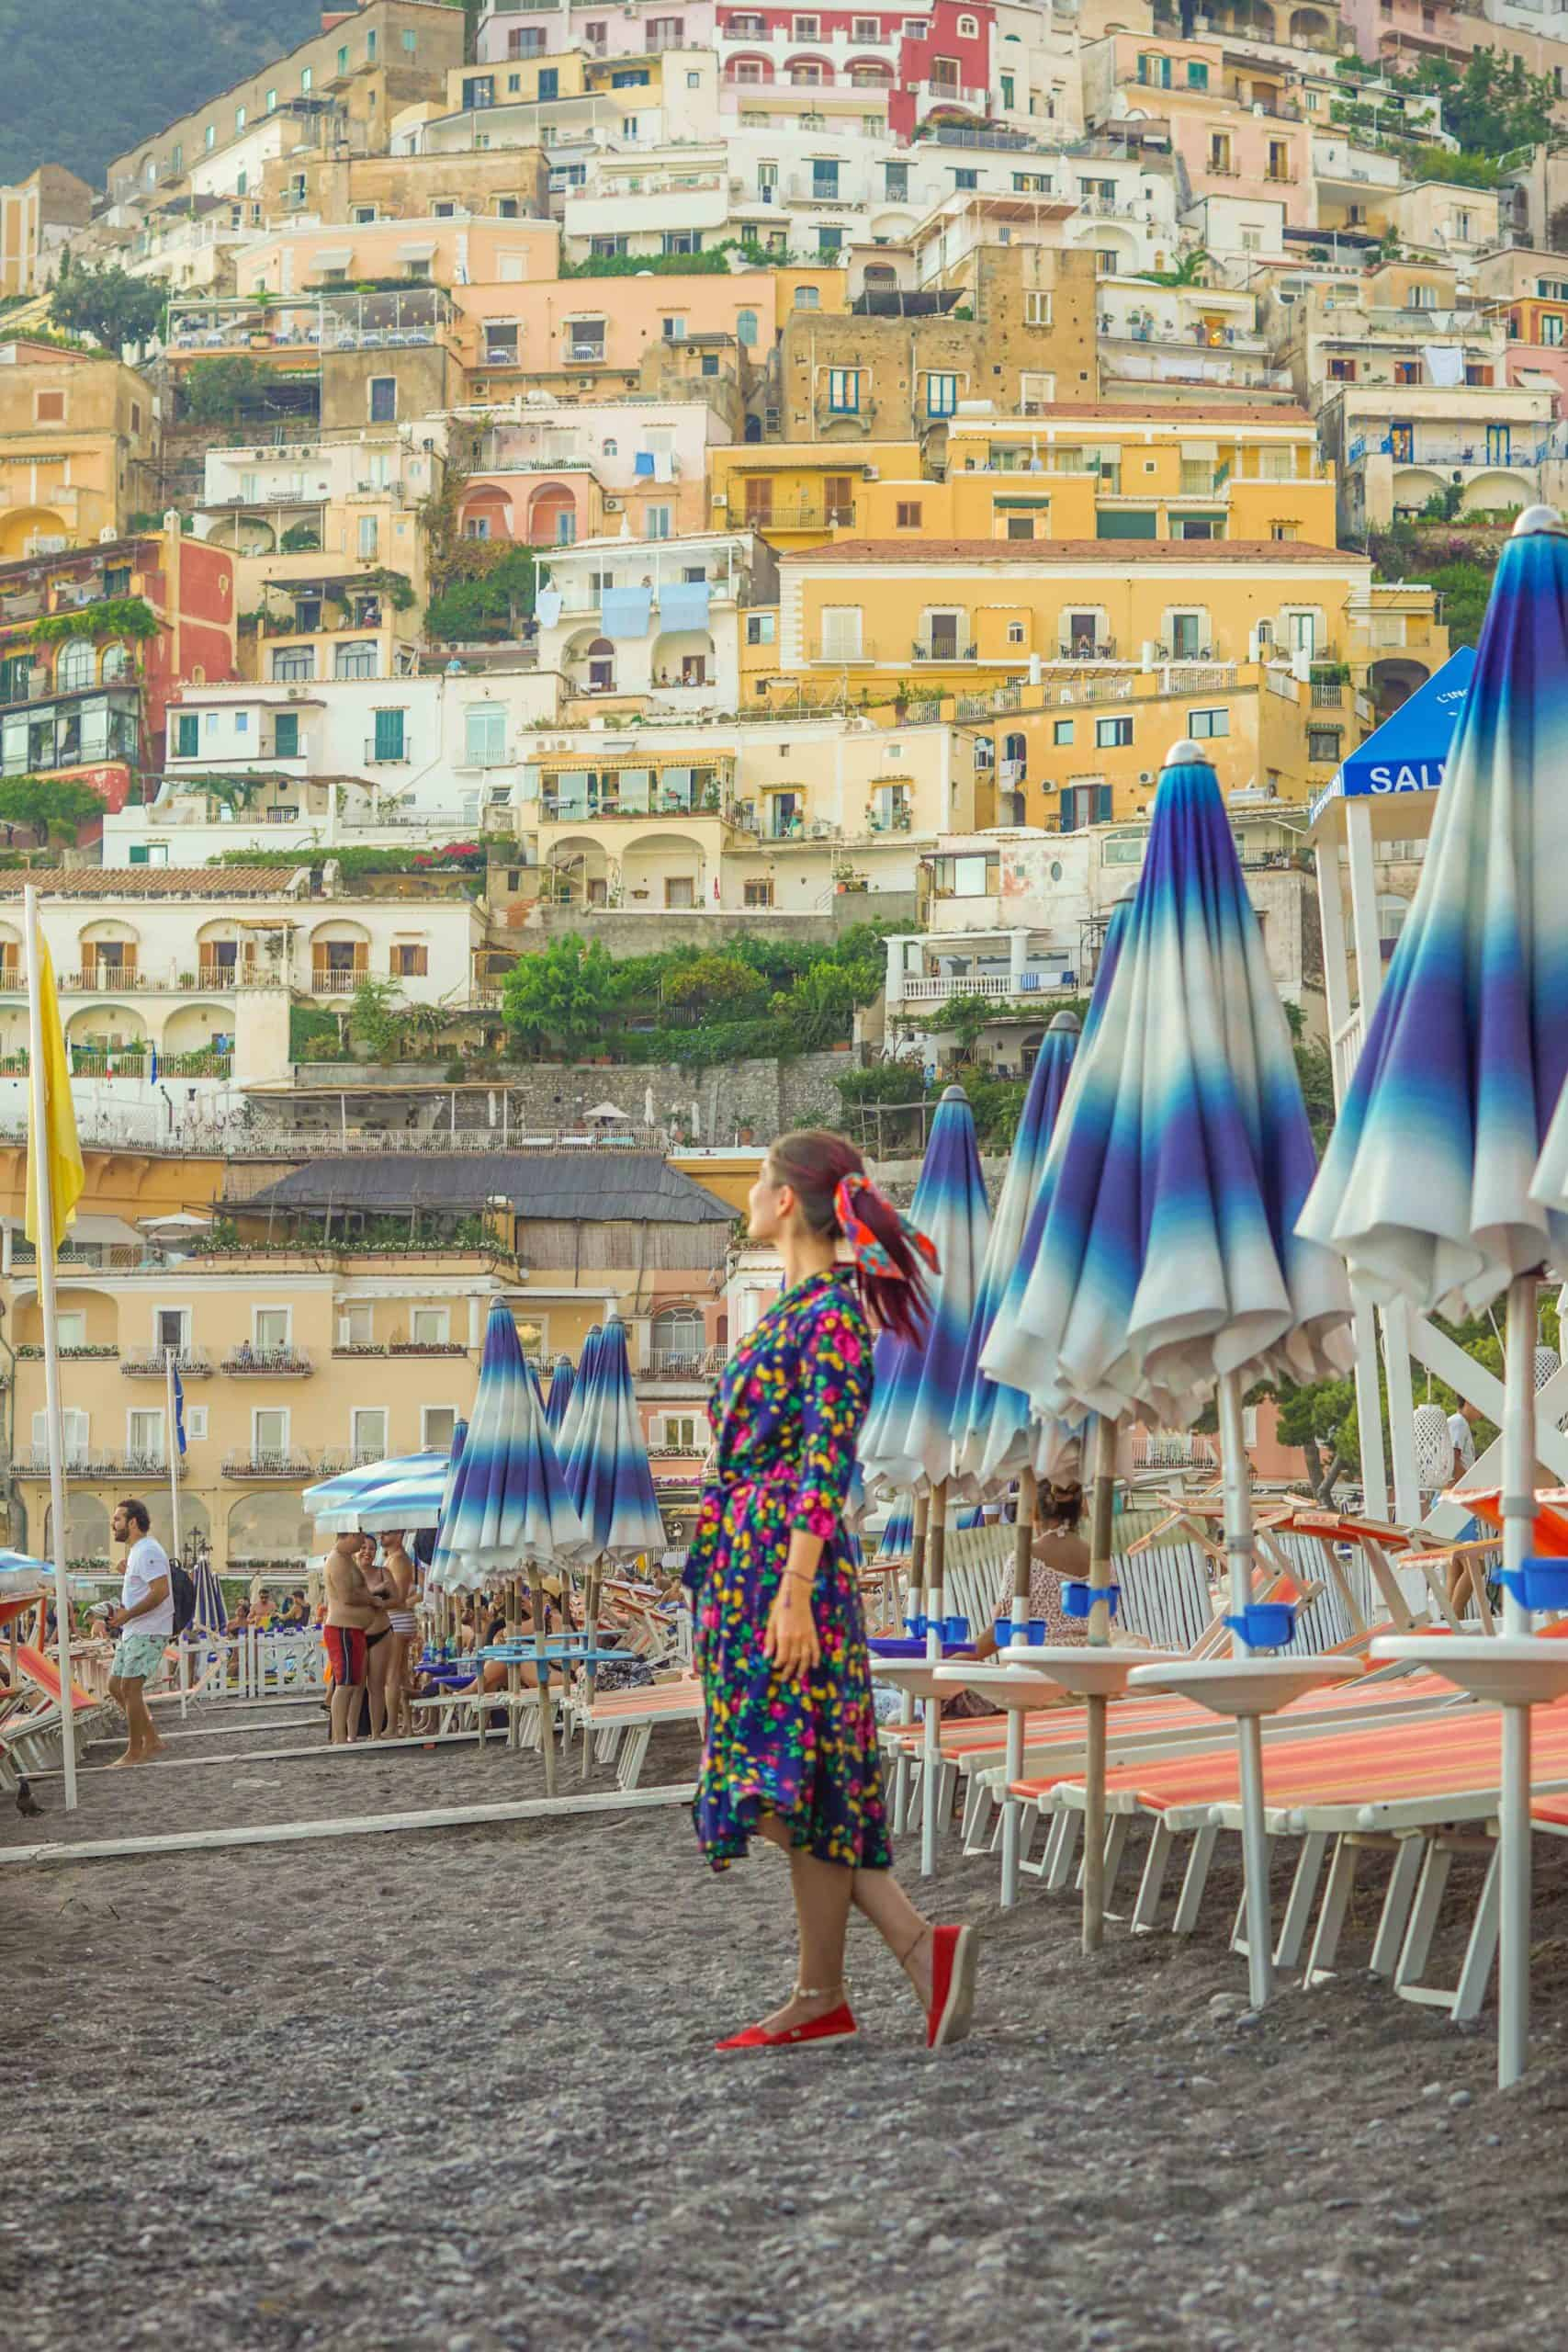 Most Instagrammable places in Positano, Italy - Spiaggia Grande